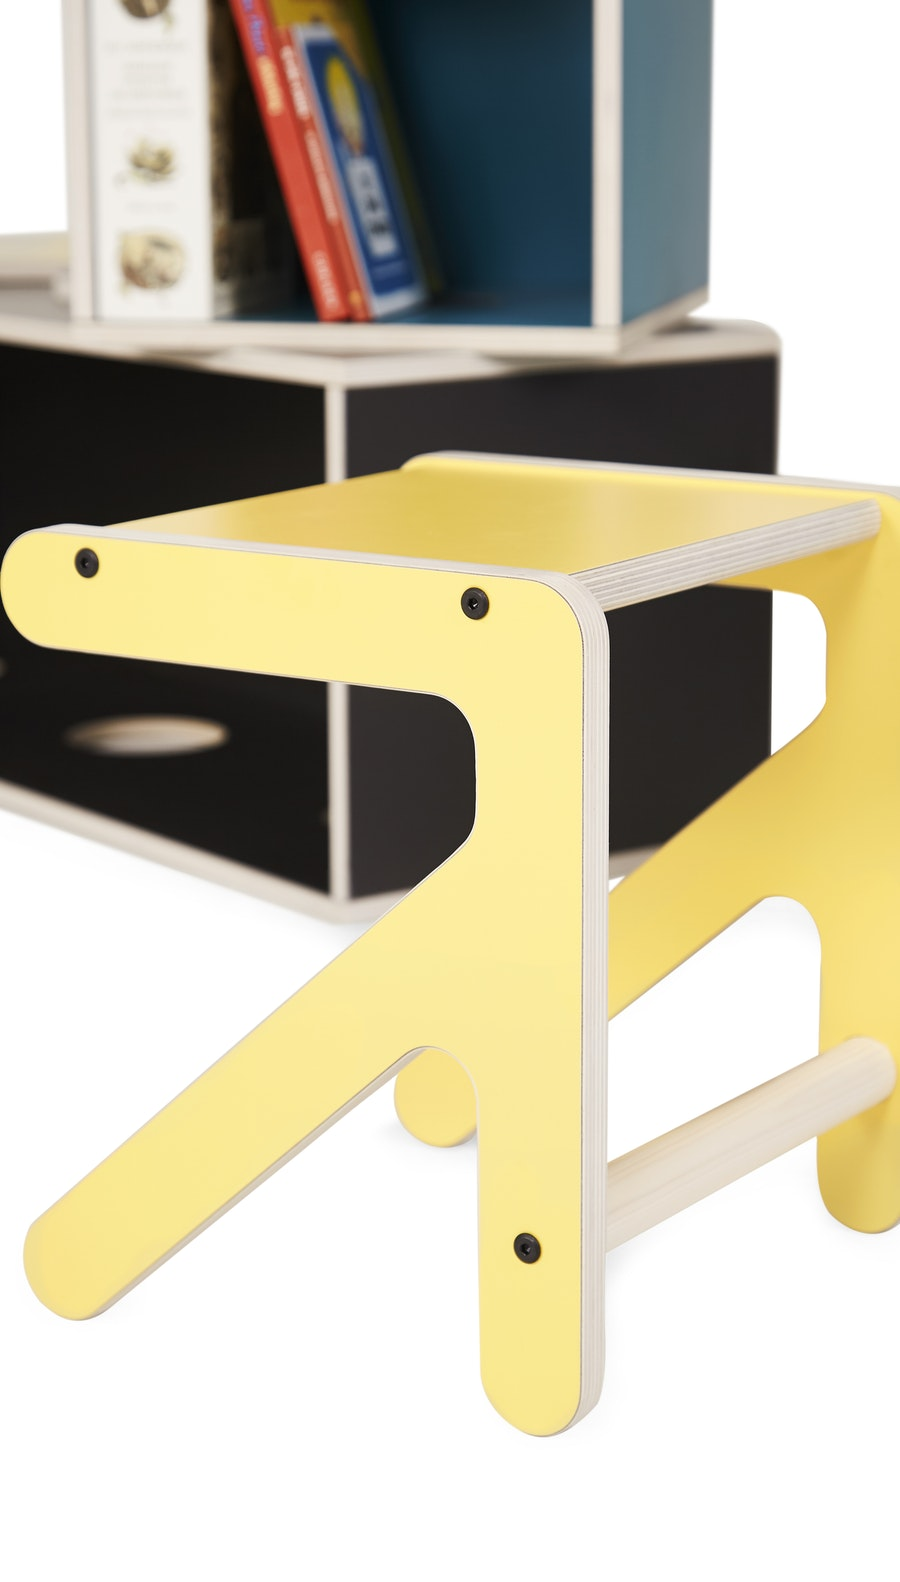 Children's Furniture Range, Kloss